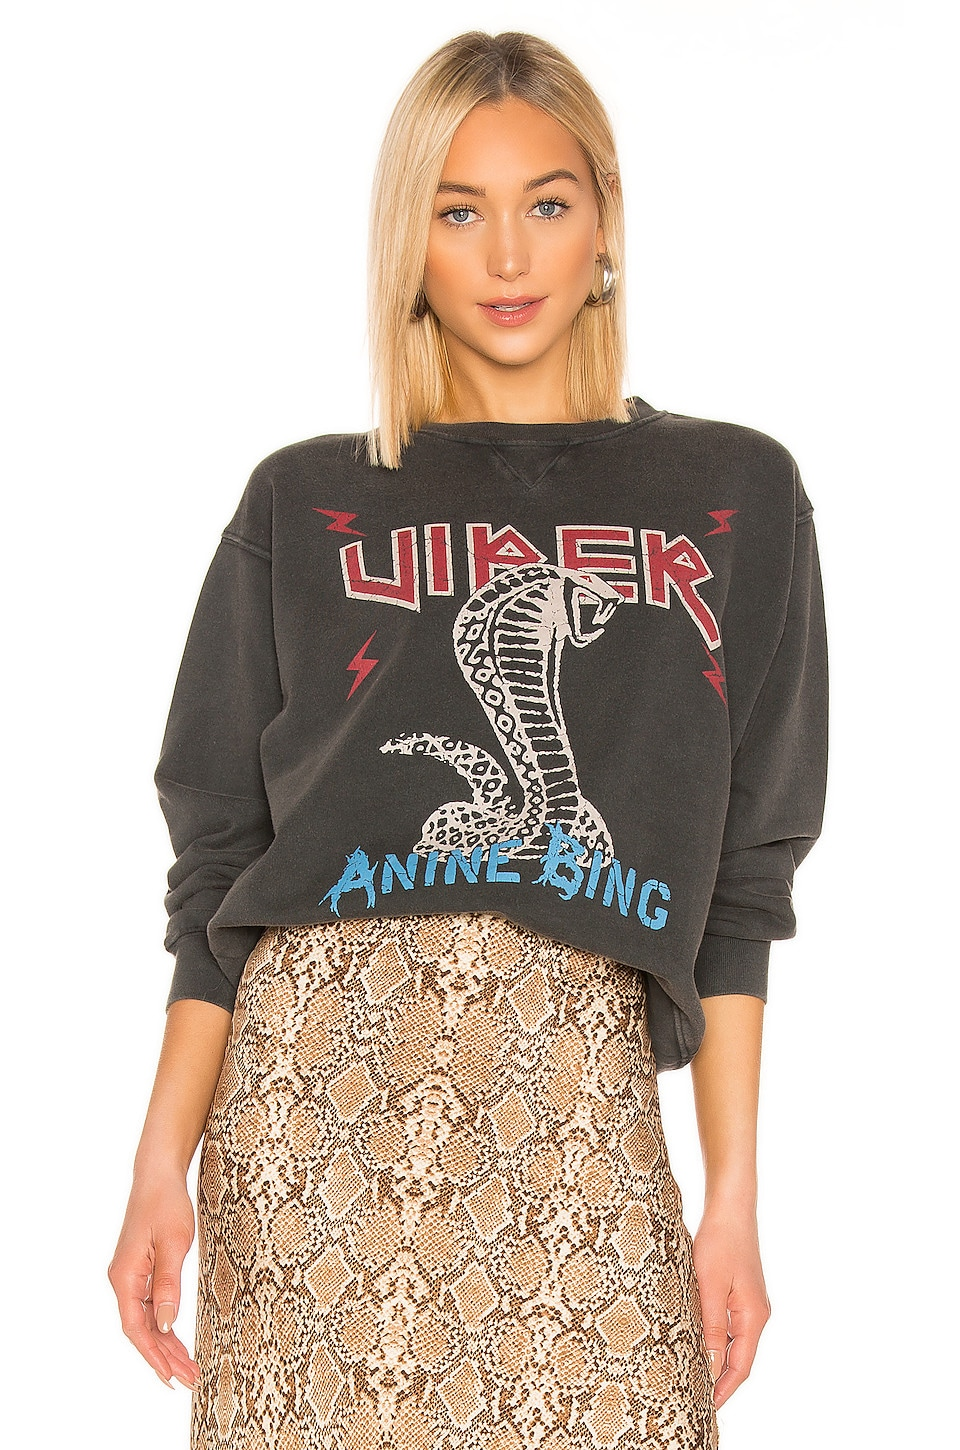 ANINE BING Cobra Sweatshirt in Charcoal